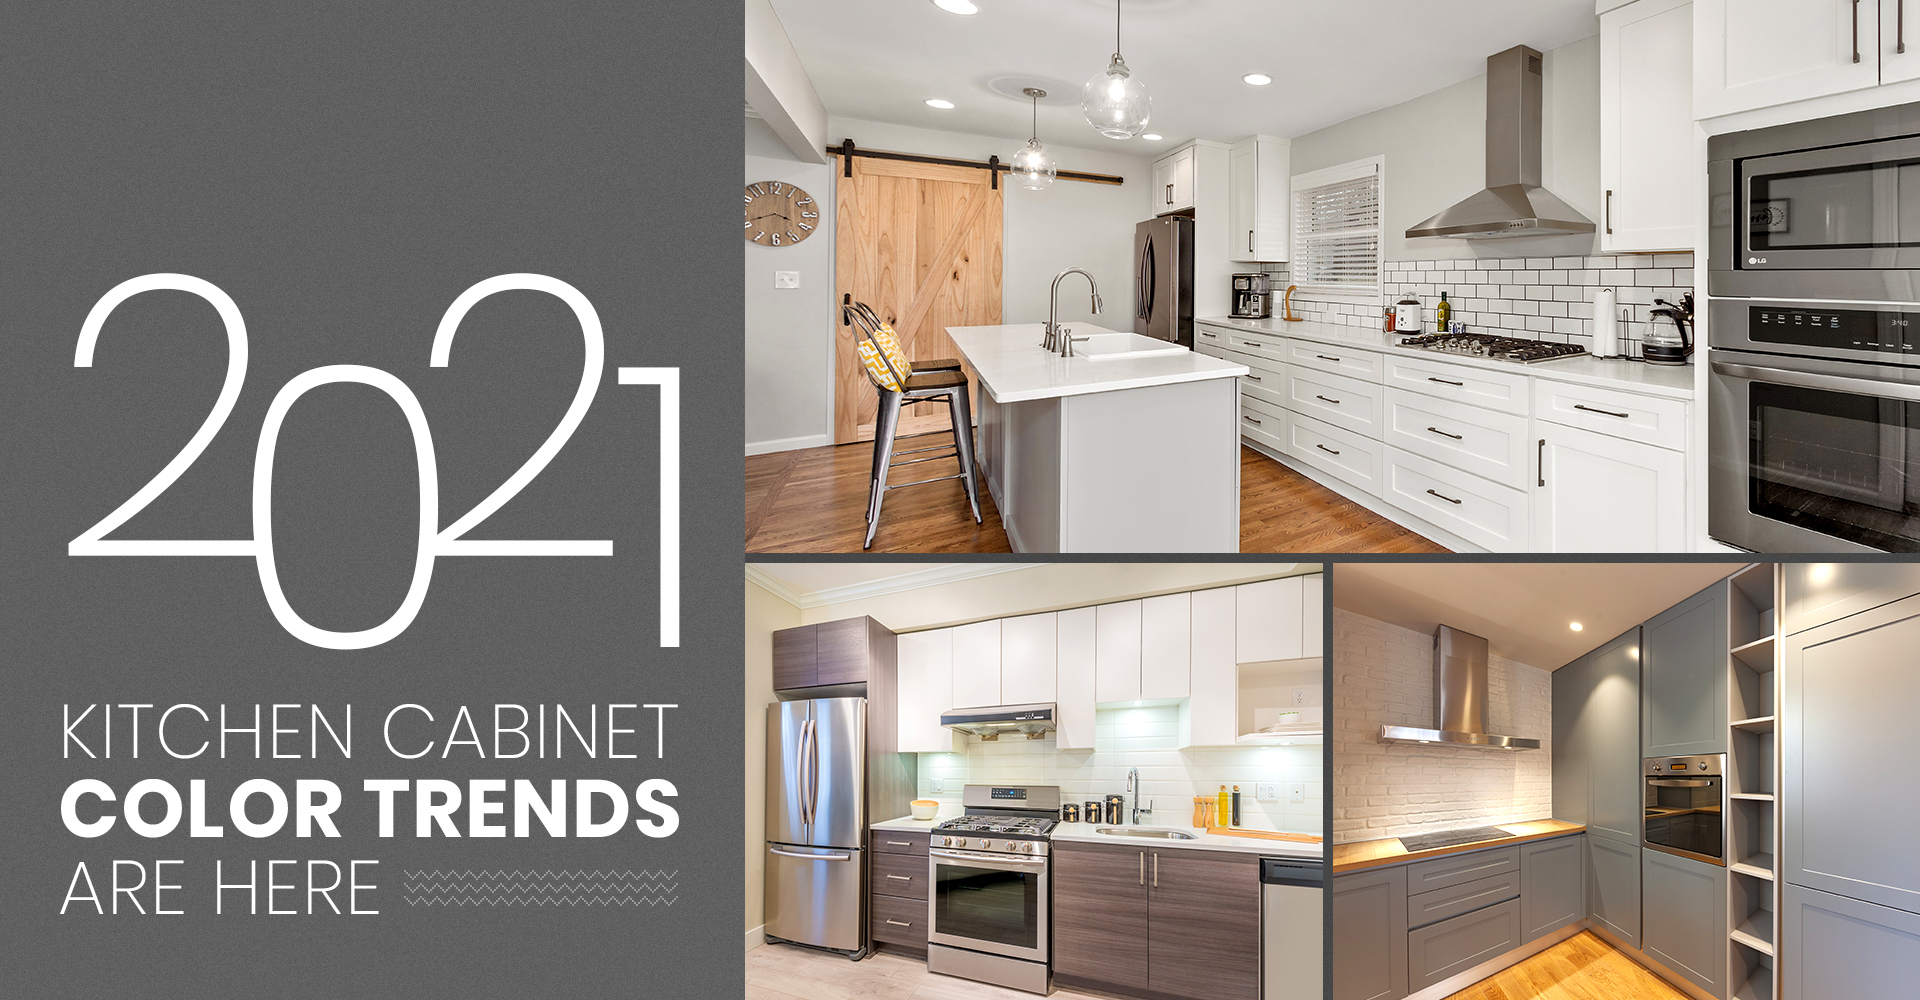 2021 Kitchen Cabinet Color Trends Are Here Cabinetcorp